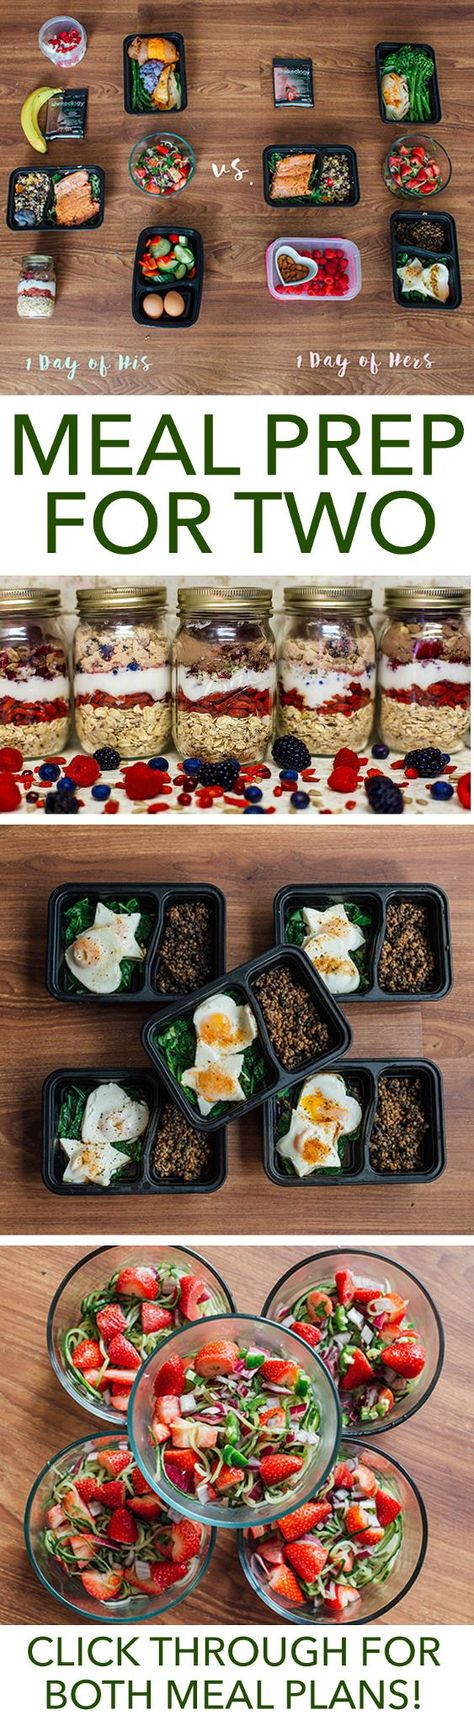 Meal prep is more fun when you have a partner in the kitchen. Make this week extra special with this meal prep plan for two. // meal prep mondays // meal planning // healthy foods // couples // relationships // valentine's day // beachbody | BeachbodyBlog.com